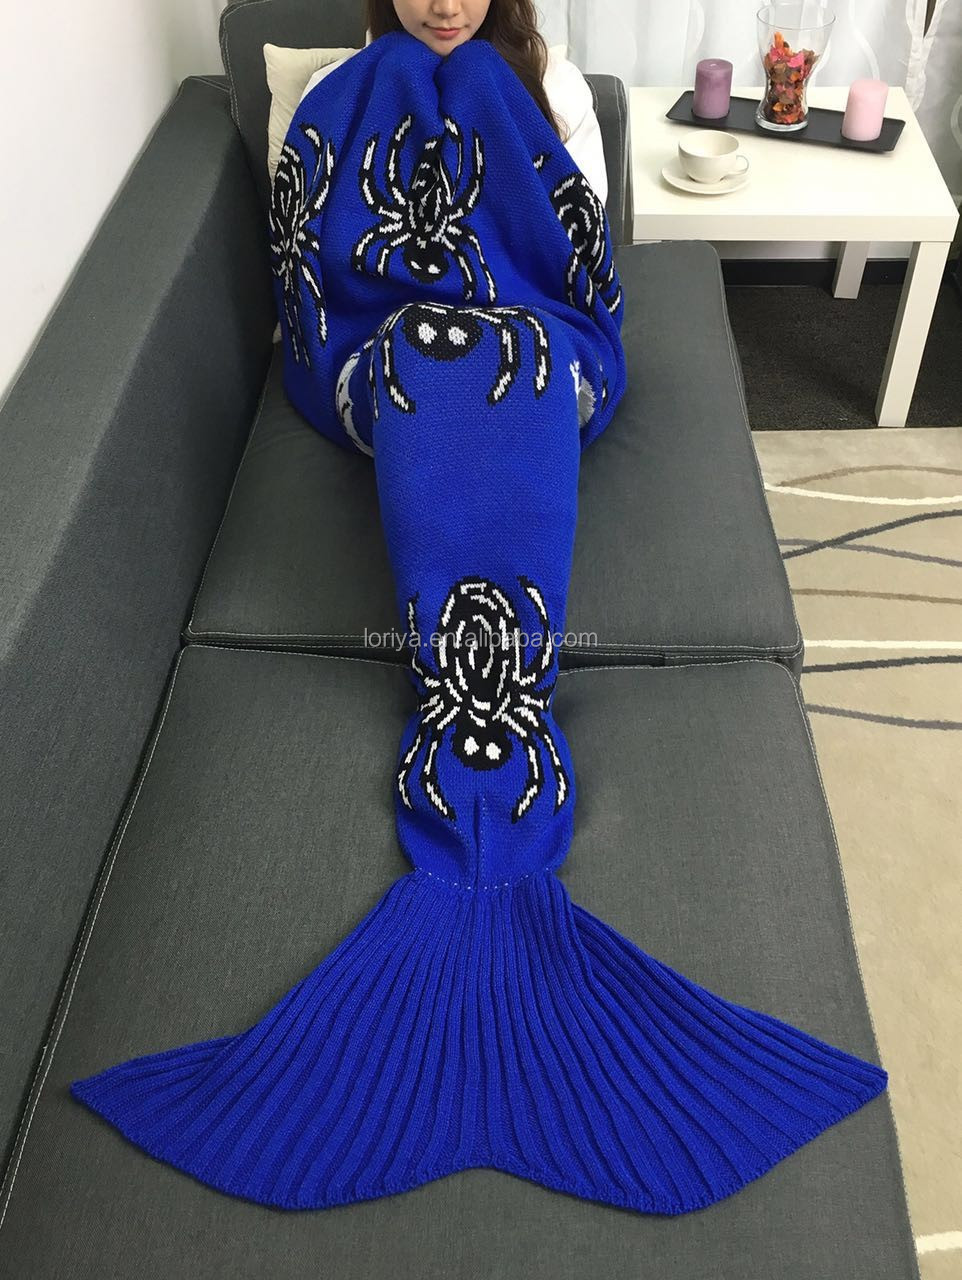 Wholesale 100% acrylic knitted mermaid tail blanket for adults